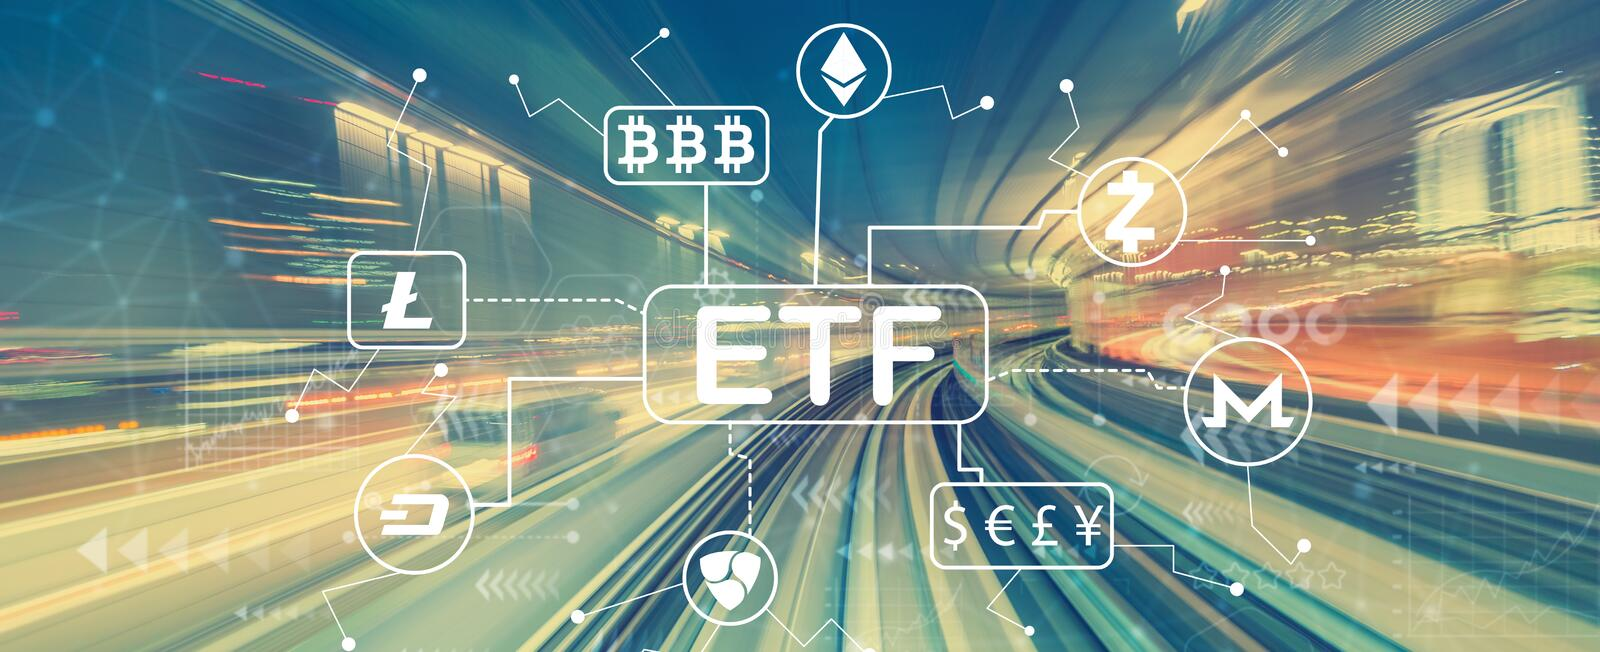 Cryptocurrency ETF theme with high speed motion blur royalty free stock images